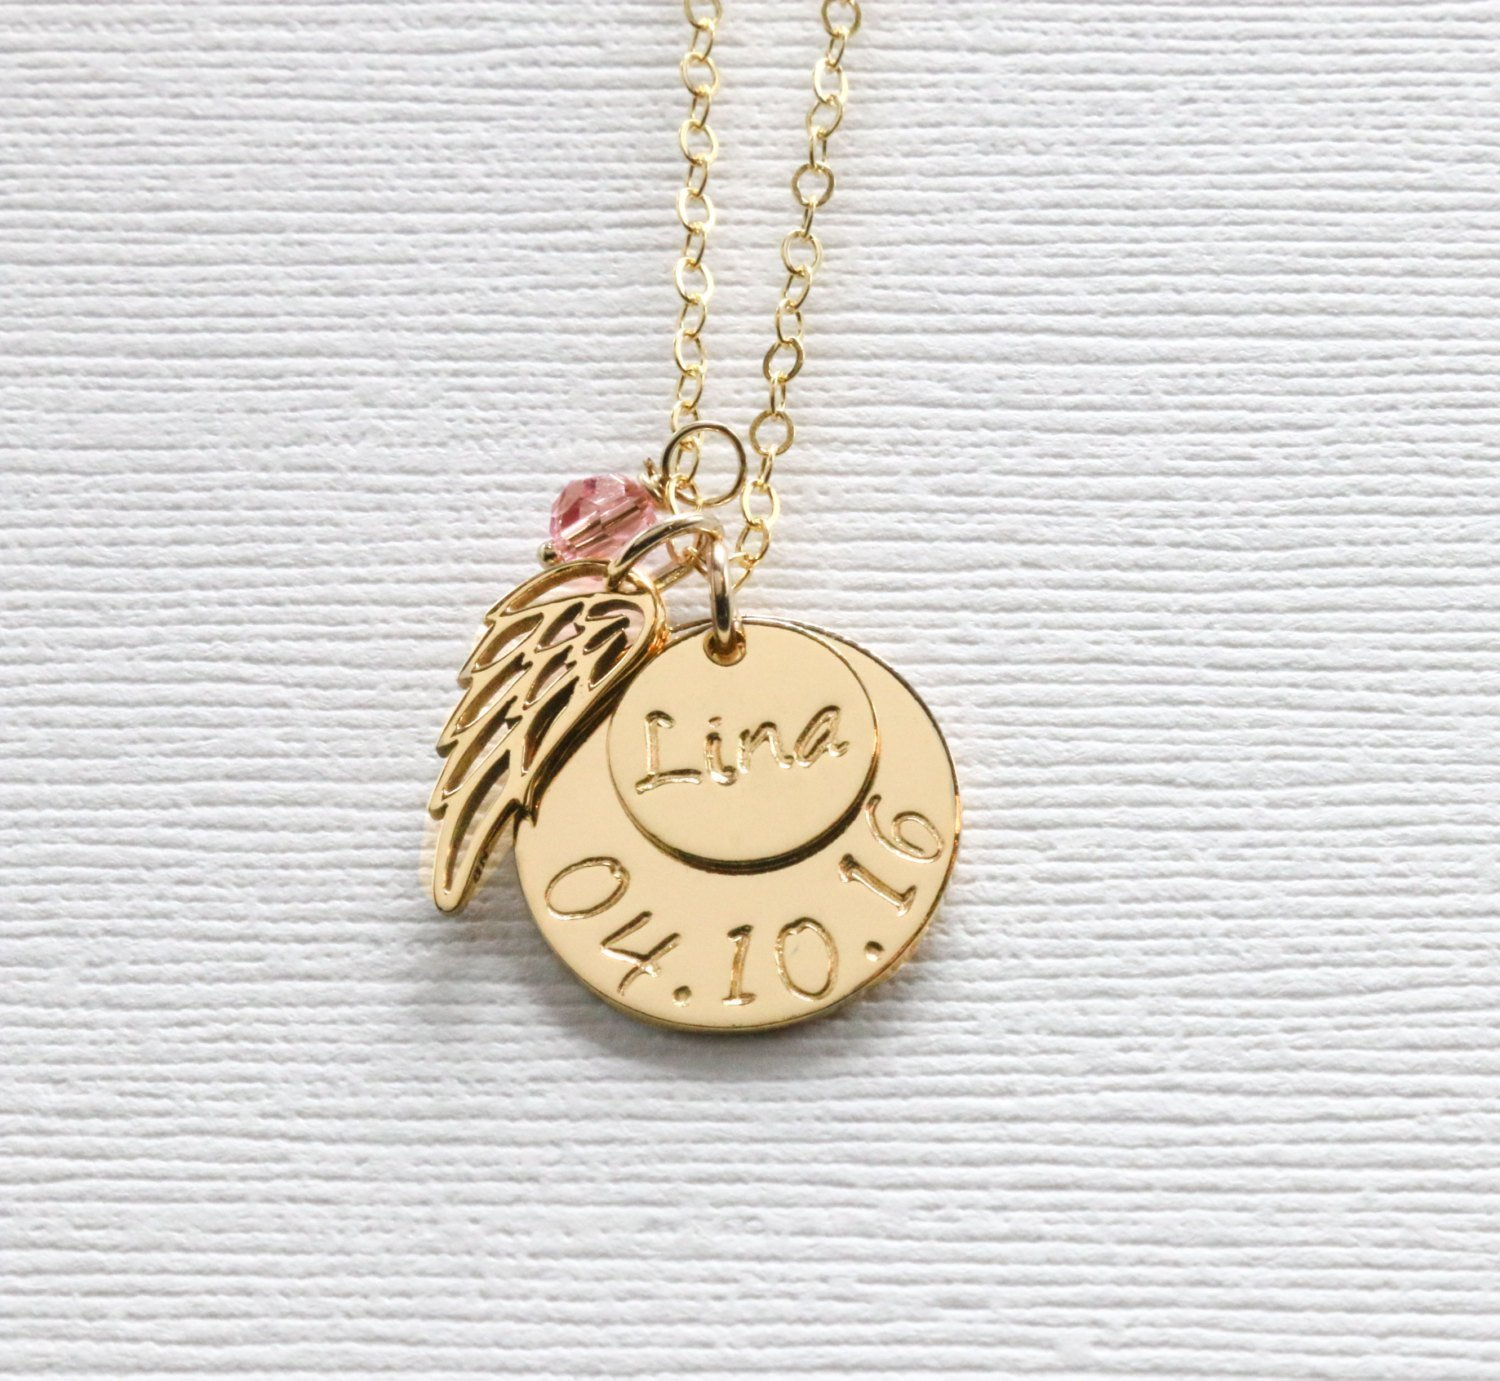 angel necklace baby miscarriagejewelry affirmationnecklace affirmation angelbabyaffirmationnecklace miscarriage